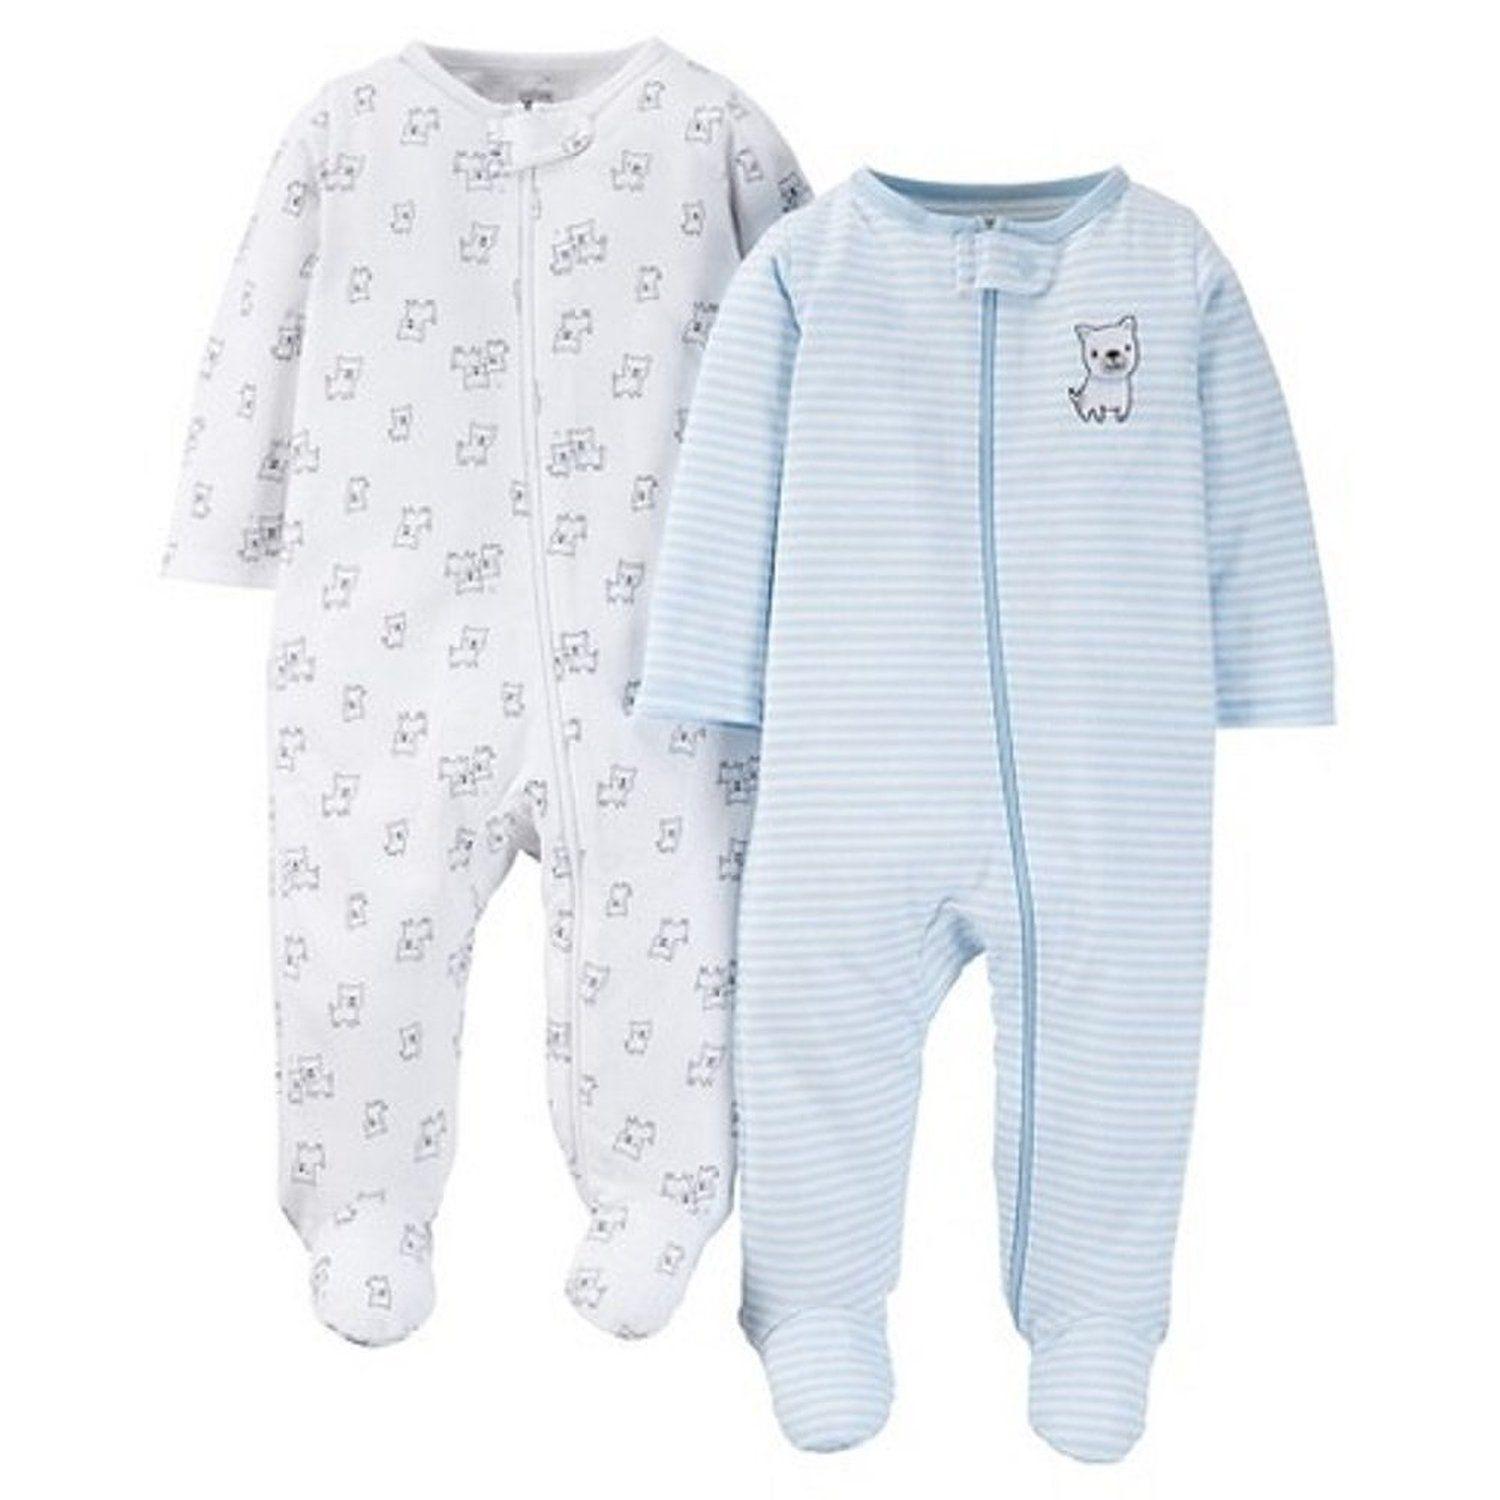 06fa0c89777a Amazon.com  Carter s Just One You Baby Boys  Doggy 2-Pack Footed ...